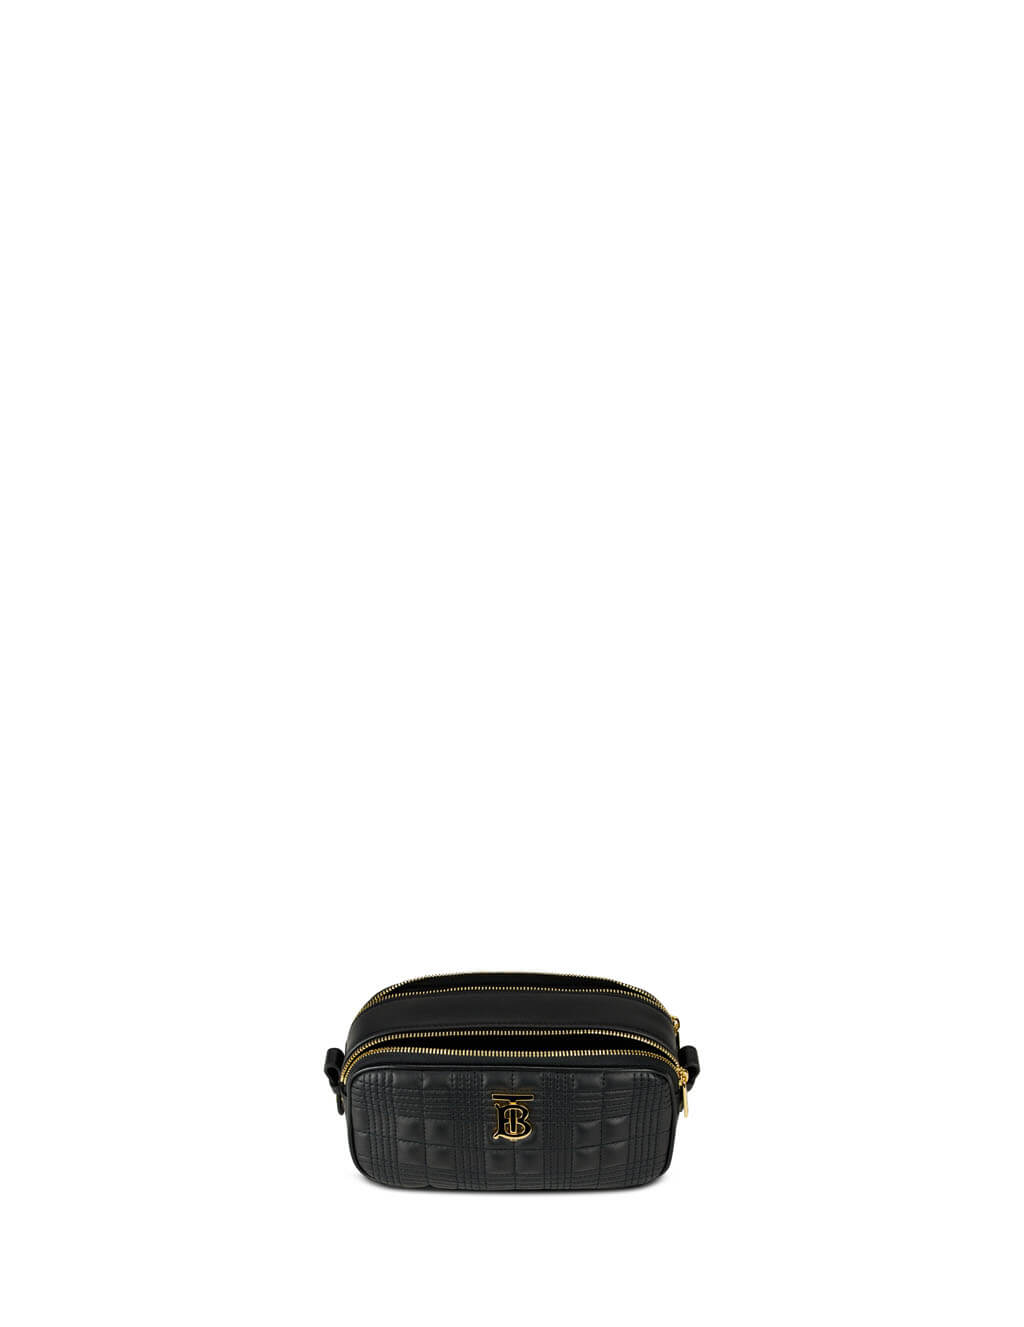 Burberry Women's Black Quilted Camera Bag 8023339 A1189